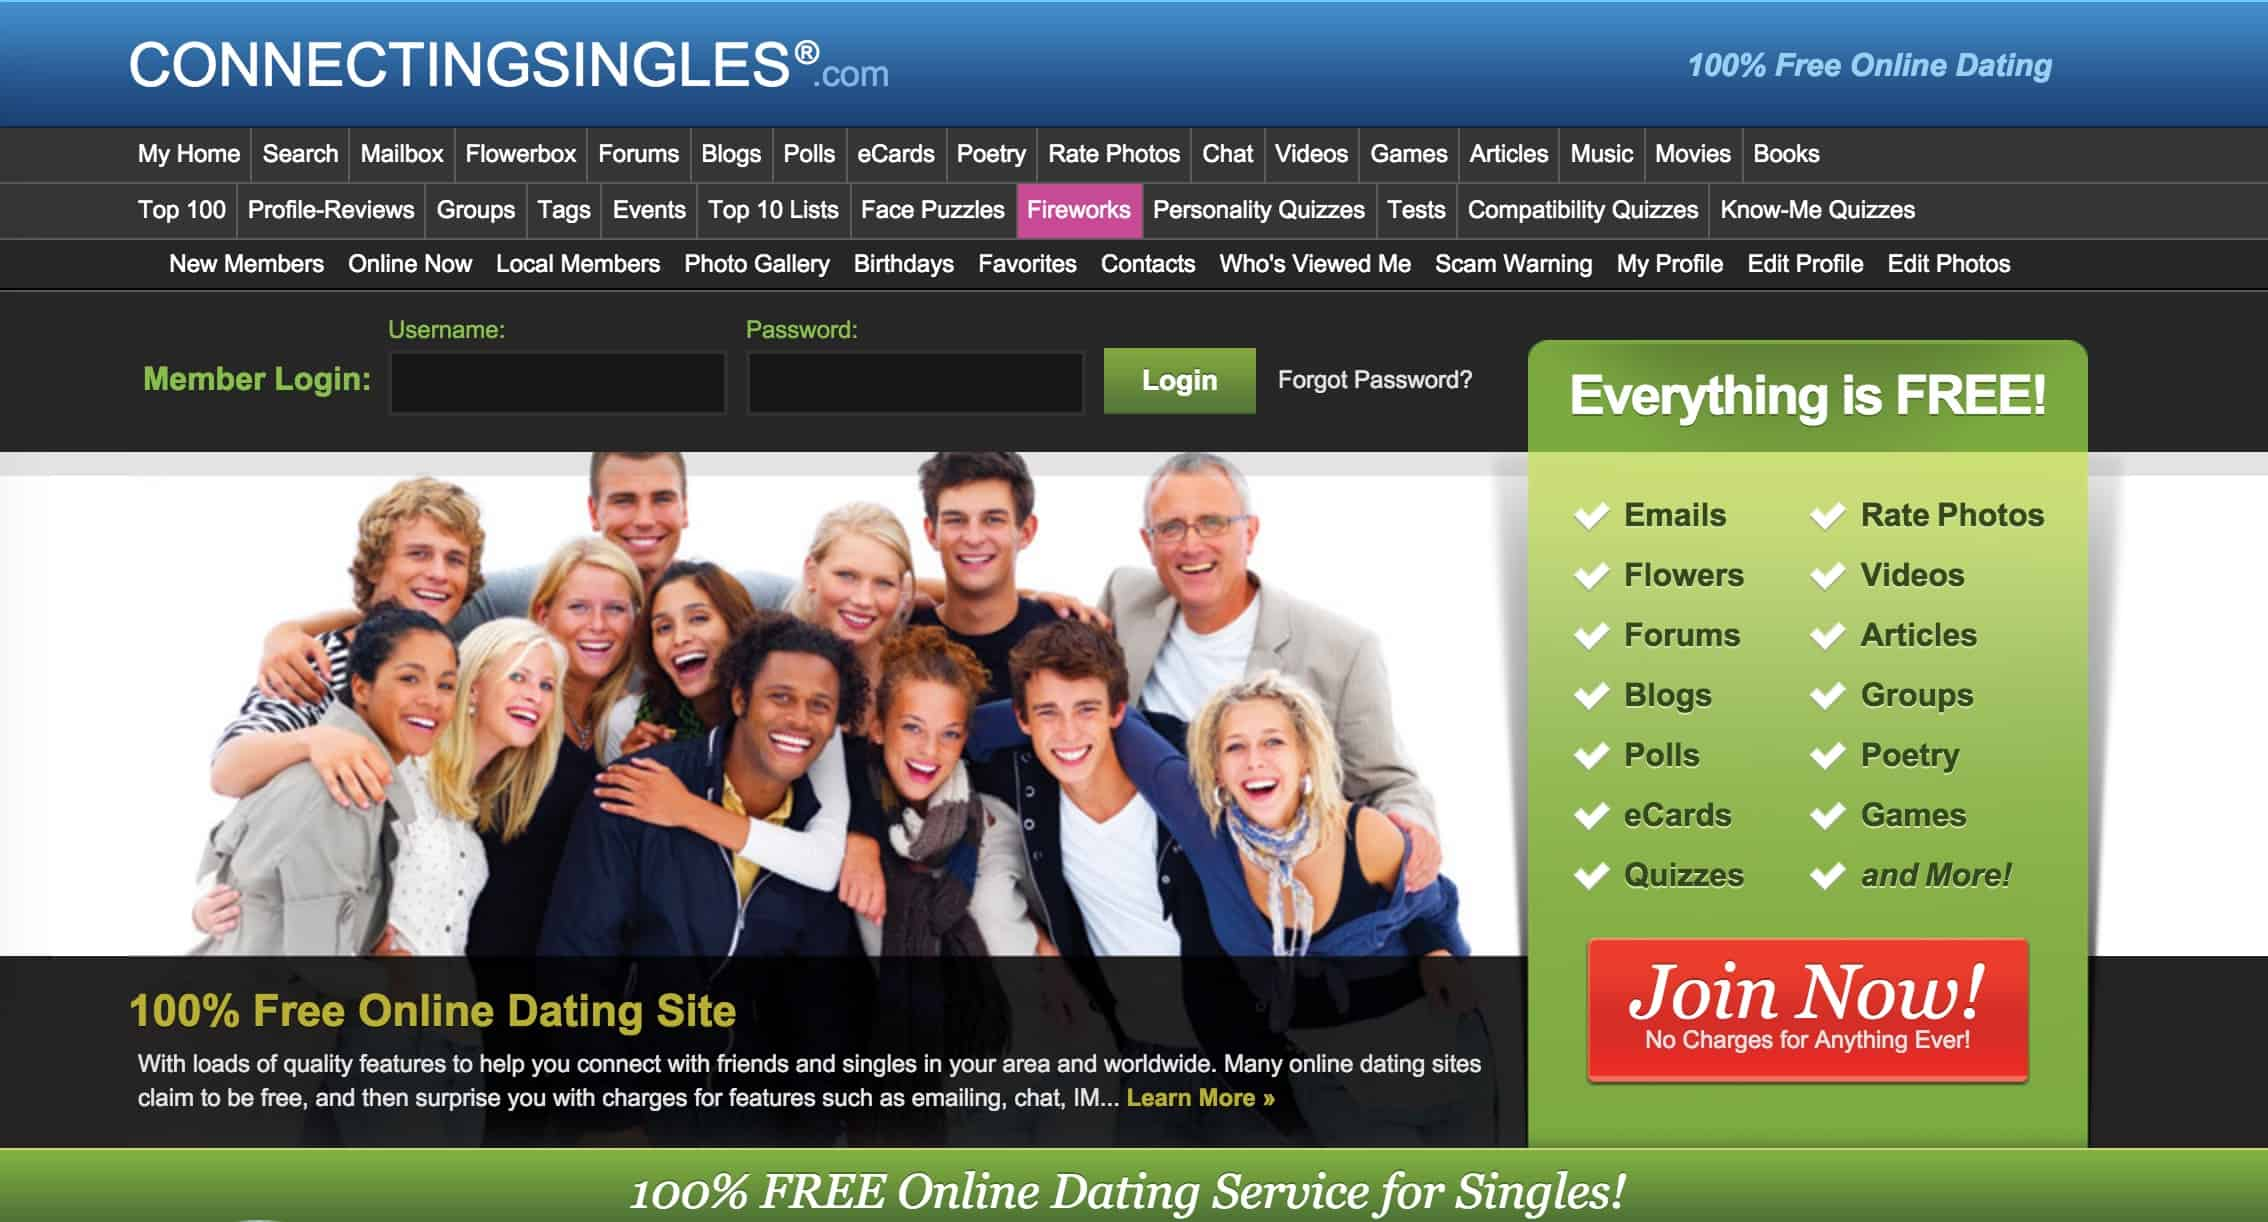 online dating sites that are 100 free Free online dating on free dating sites uk, is a great way of testing the waters, but you will soon notice that.